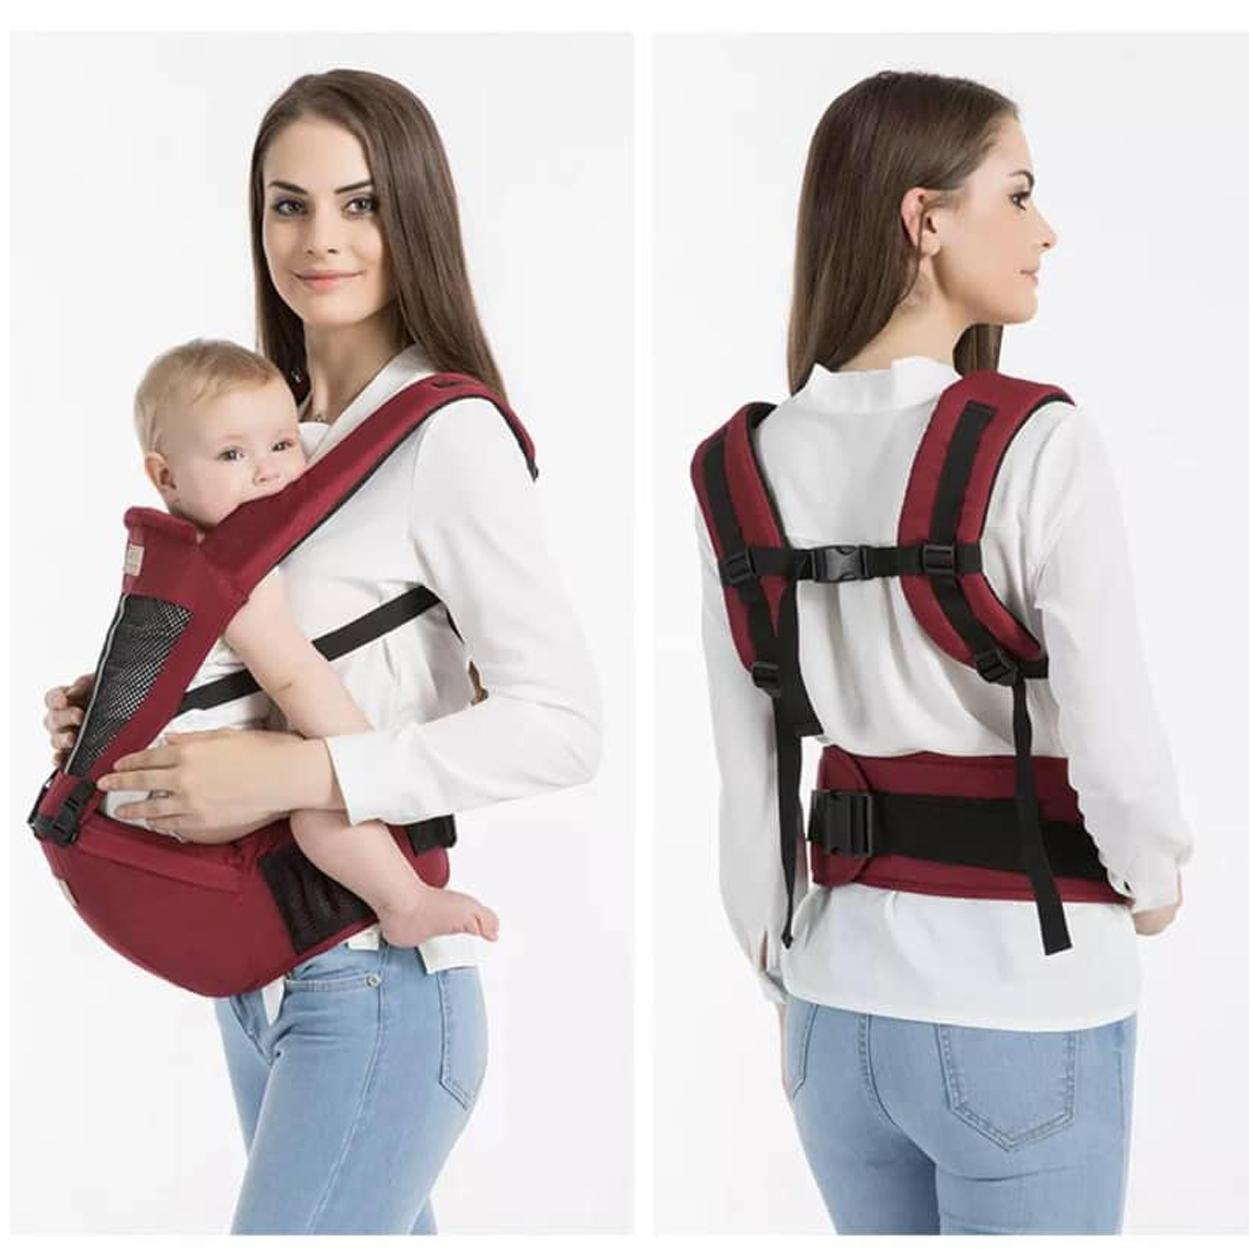 95c37315acf 2 in 1 Breathable Multifunctional Ergonomic Baby Carrier Infant Comfortable Sling  Backpack Hip seat Wrap (